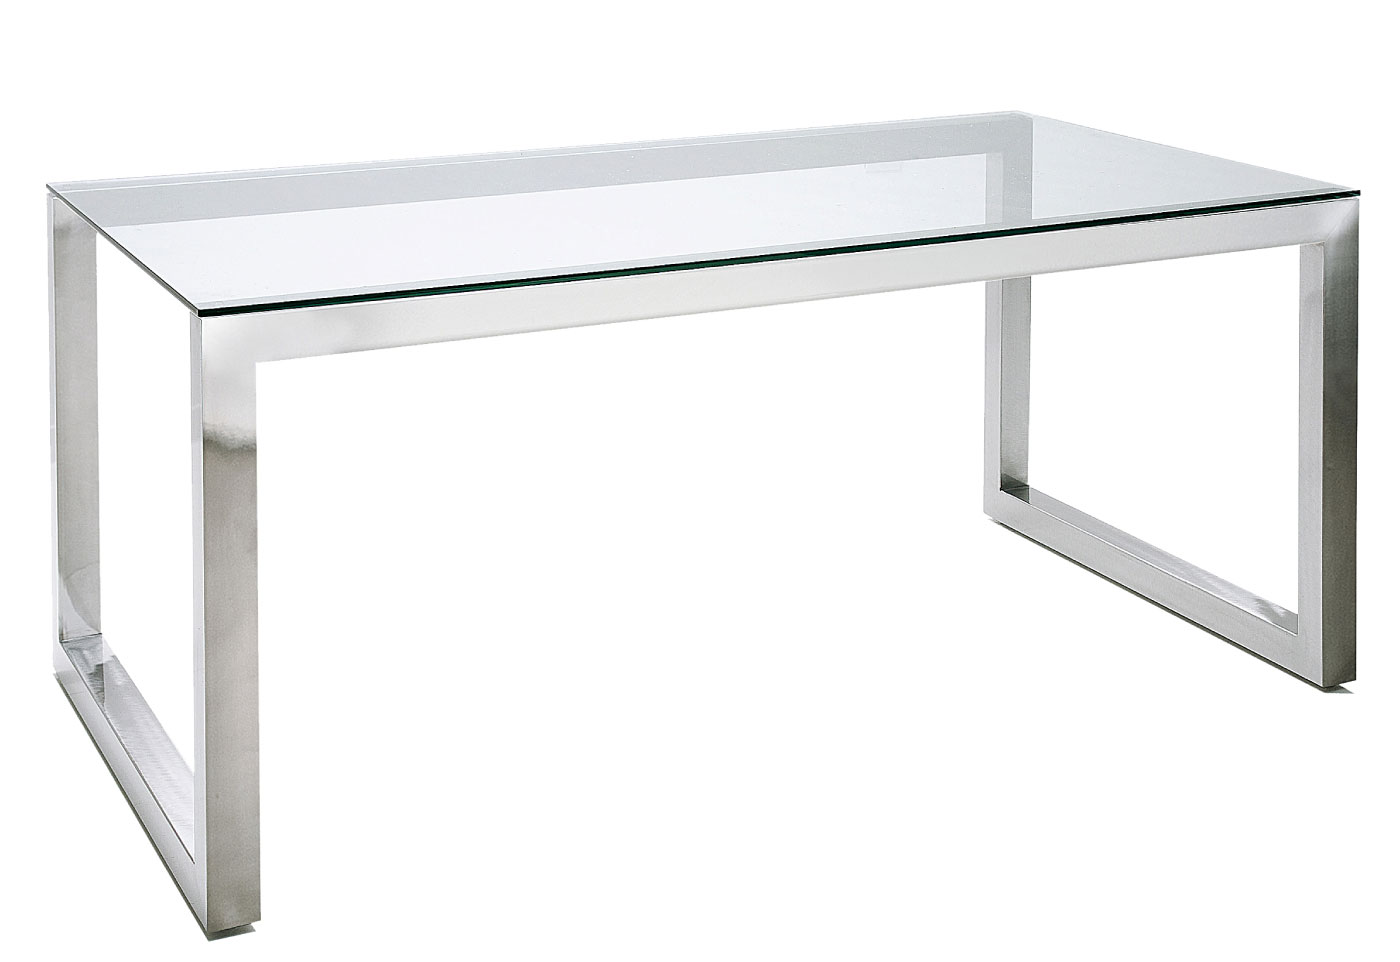 Base de mesa de acero inox no disponible en - Mesas de despacho de cristal ...